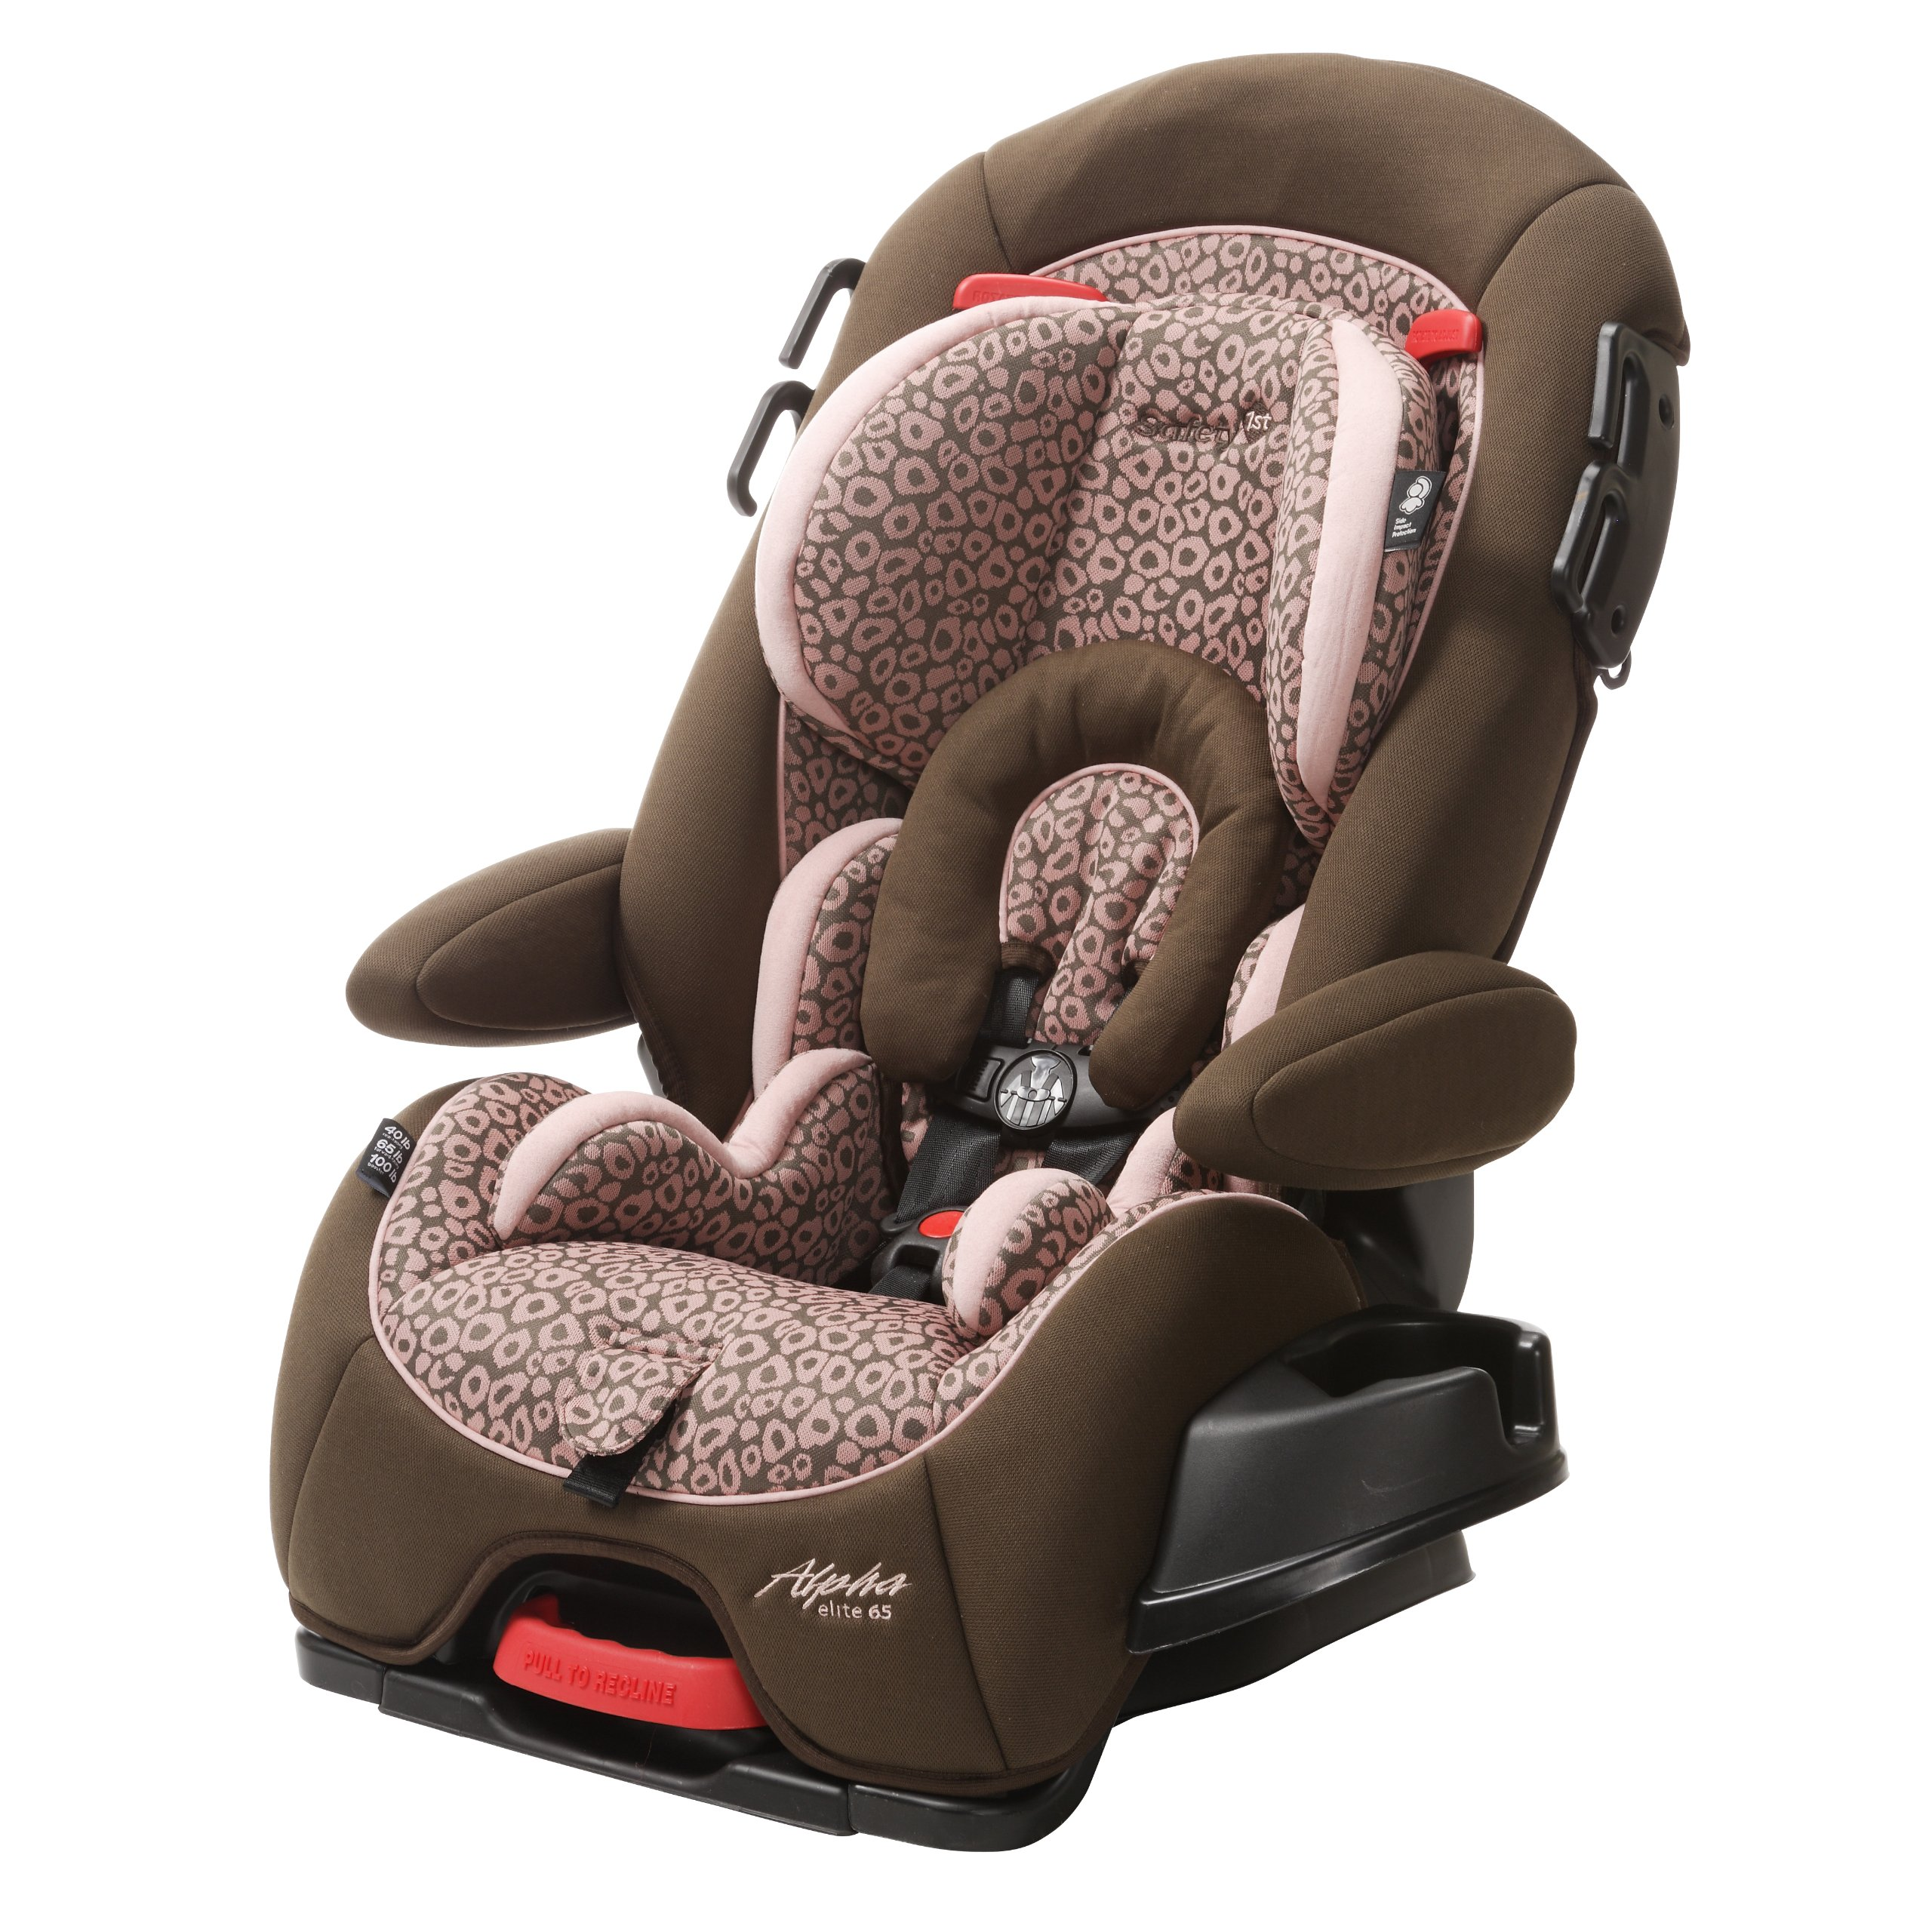 Amazon.com : Safety 1st Alpha Elite 65 Convertible Car Seat, Rachel